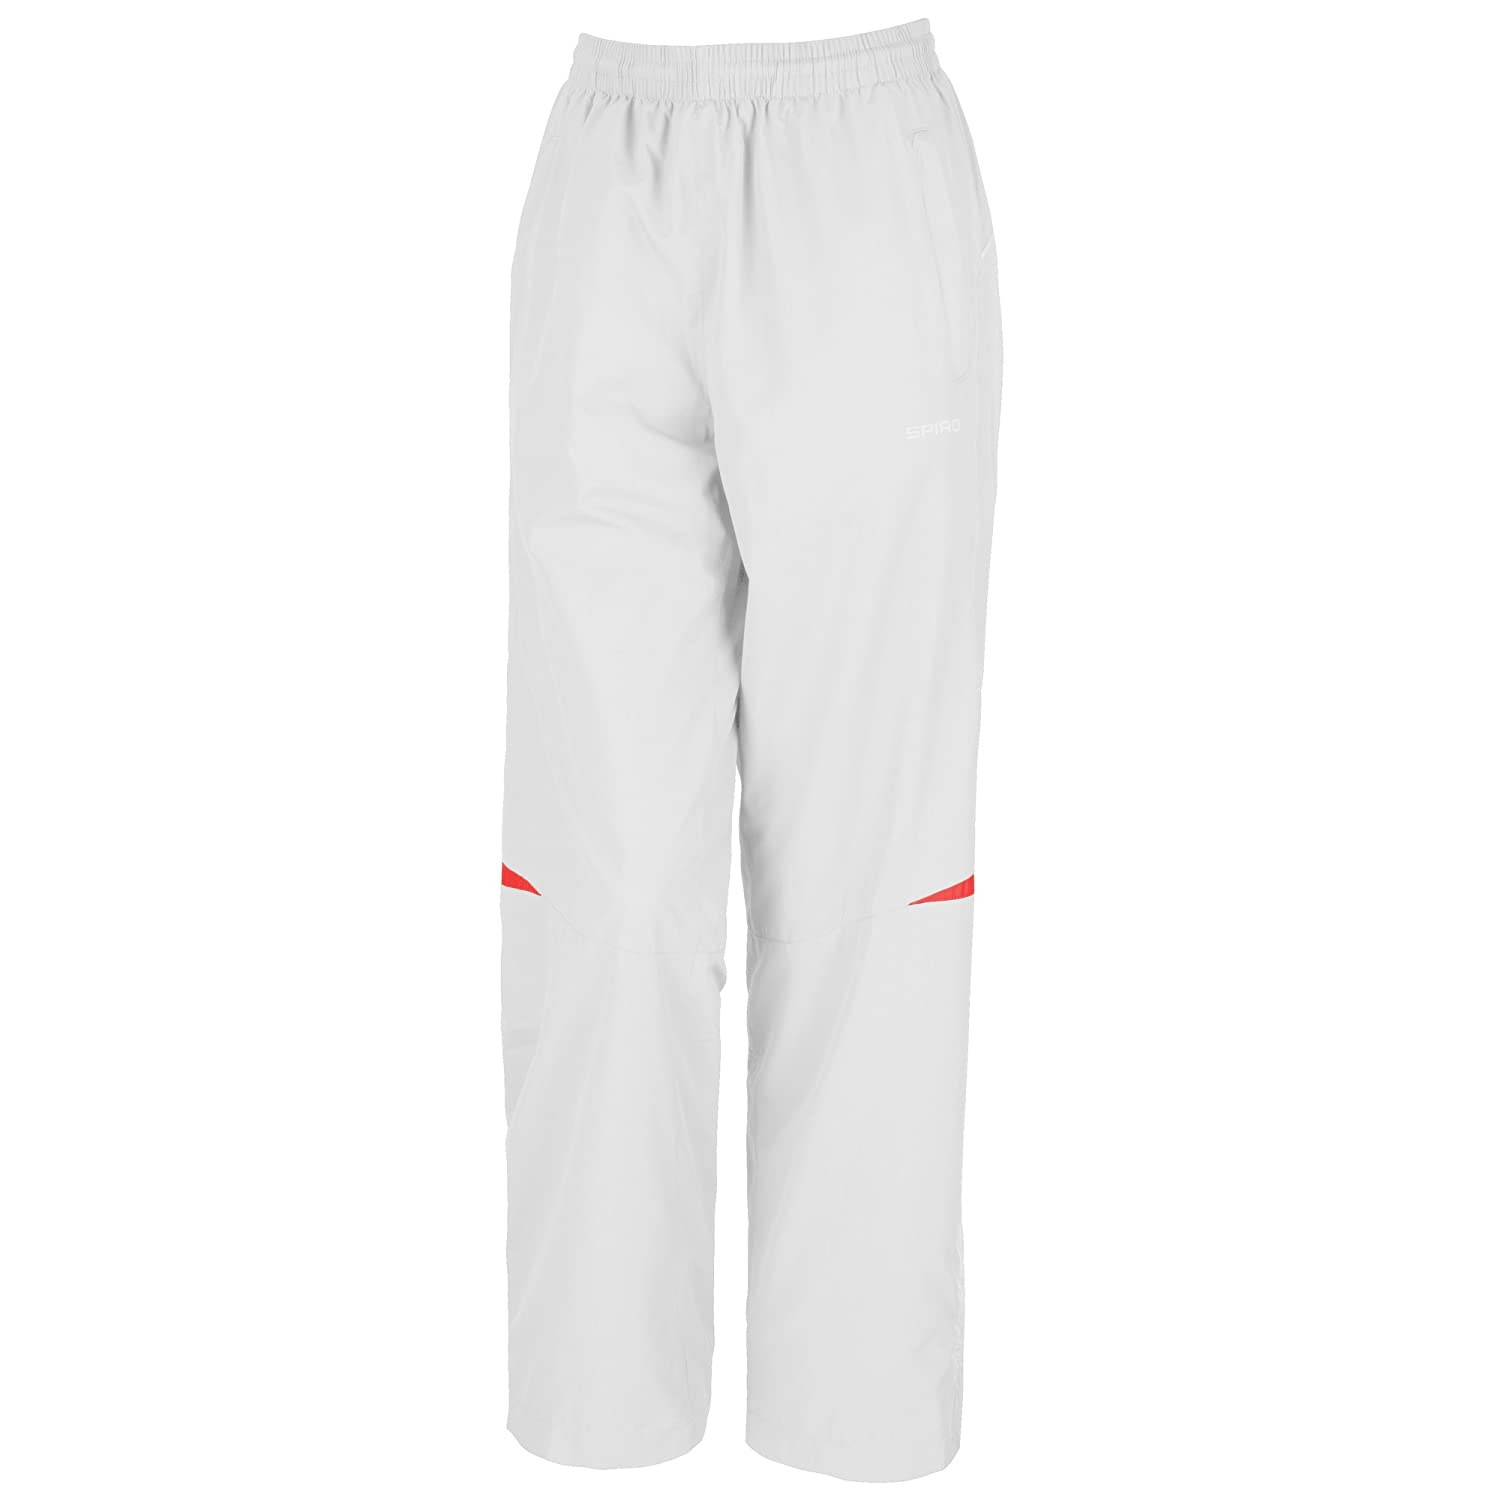 Spiro Womens/Ladies Micro-Lite Performance Sports Pants/Tracksuit Bottoms